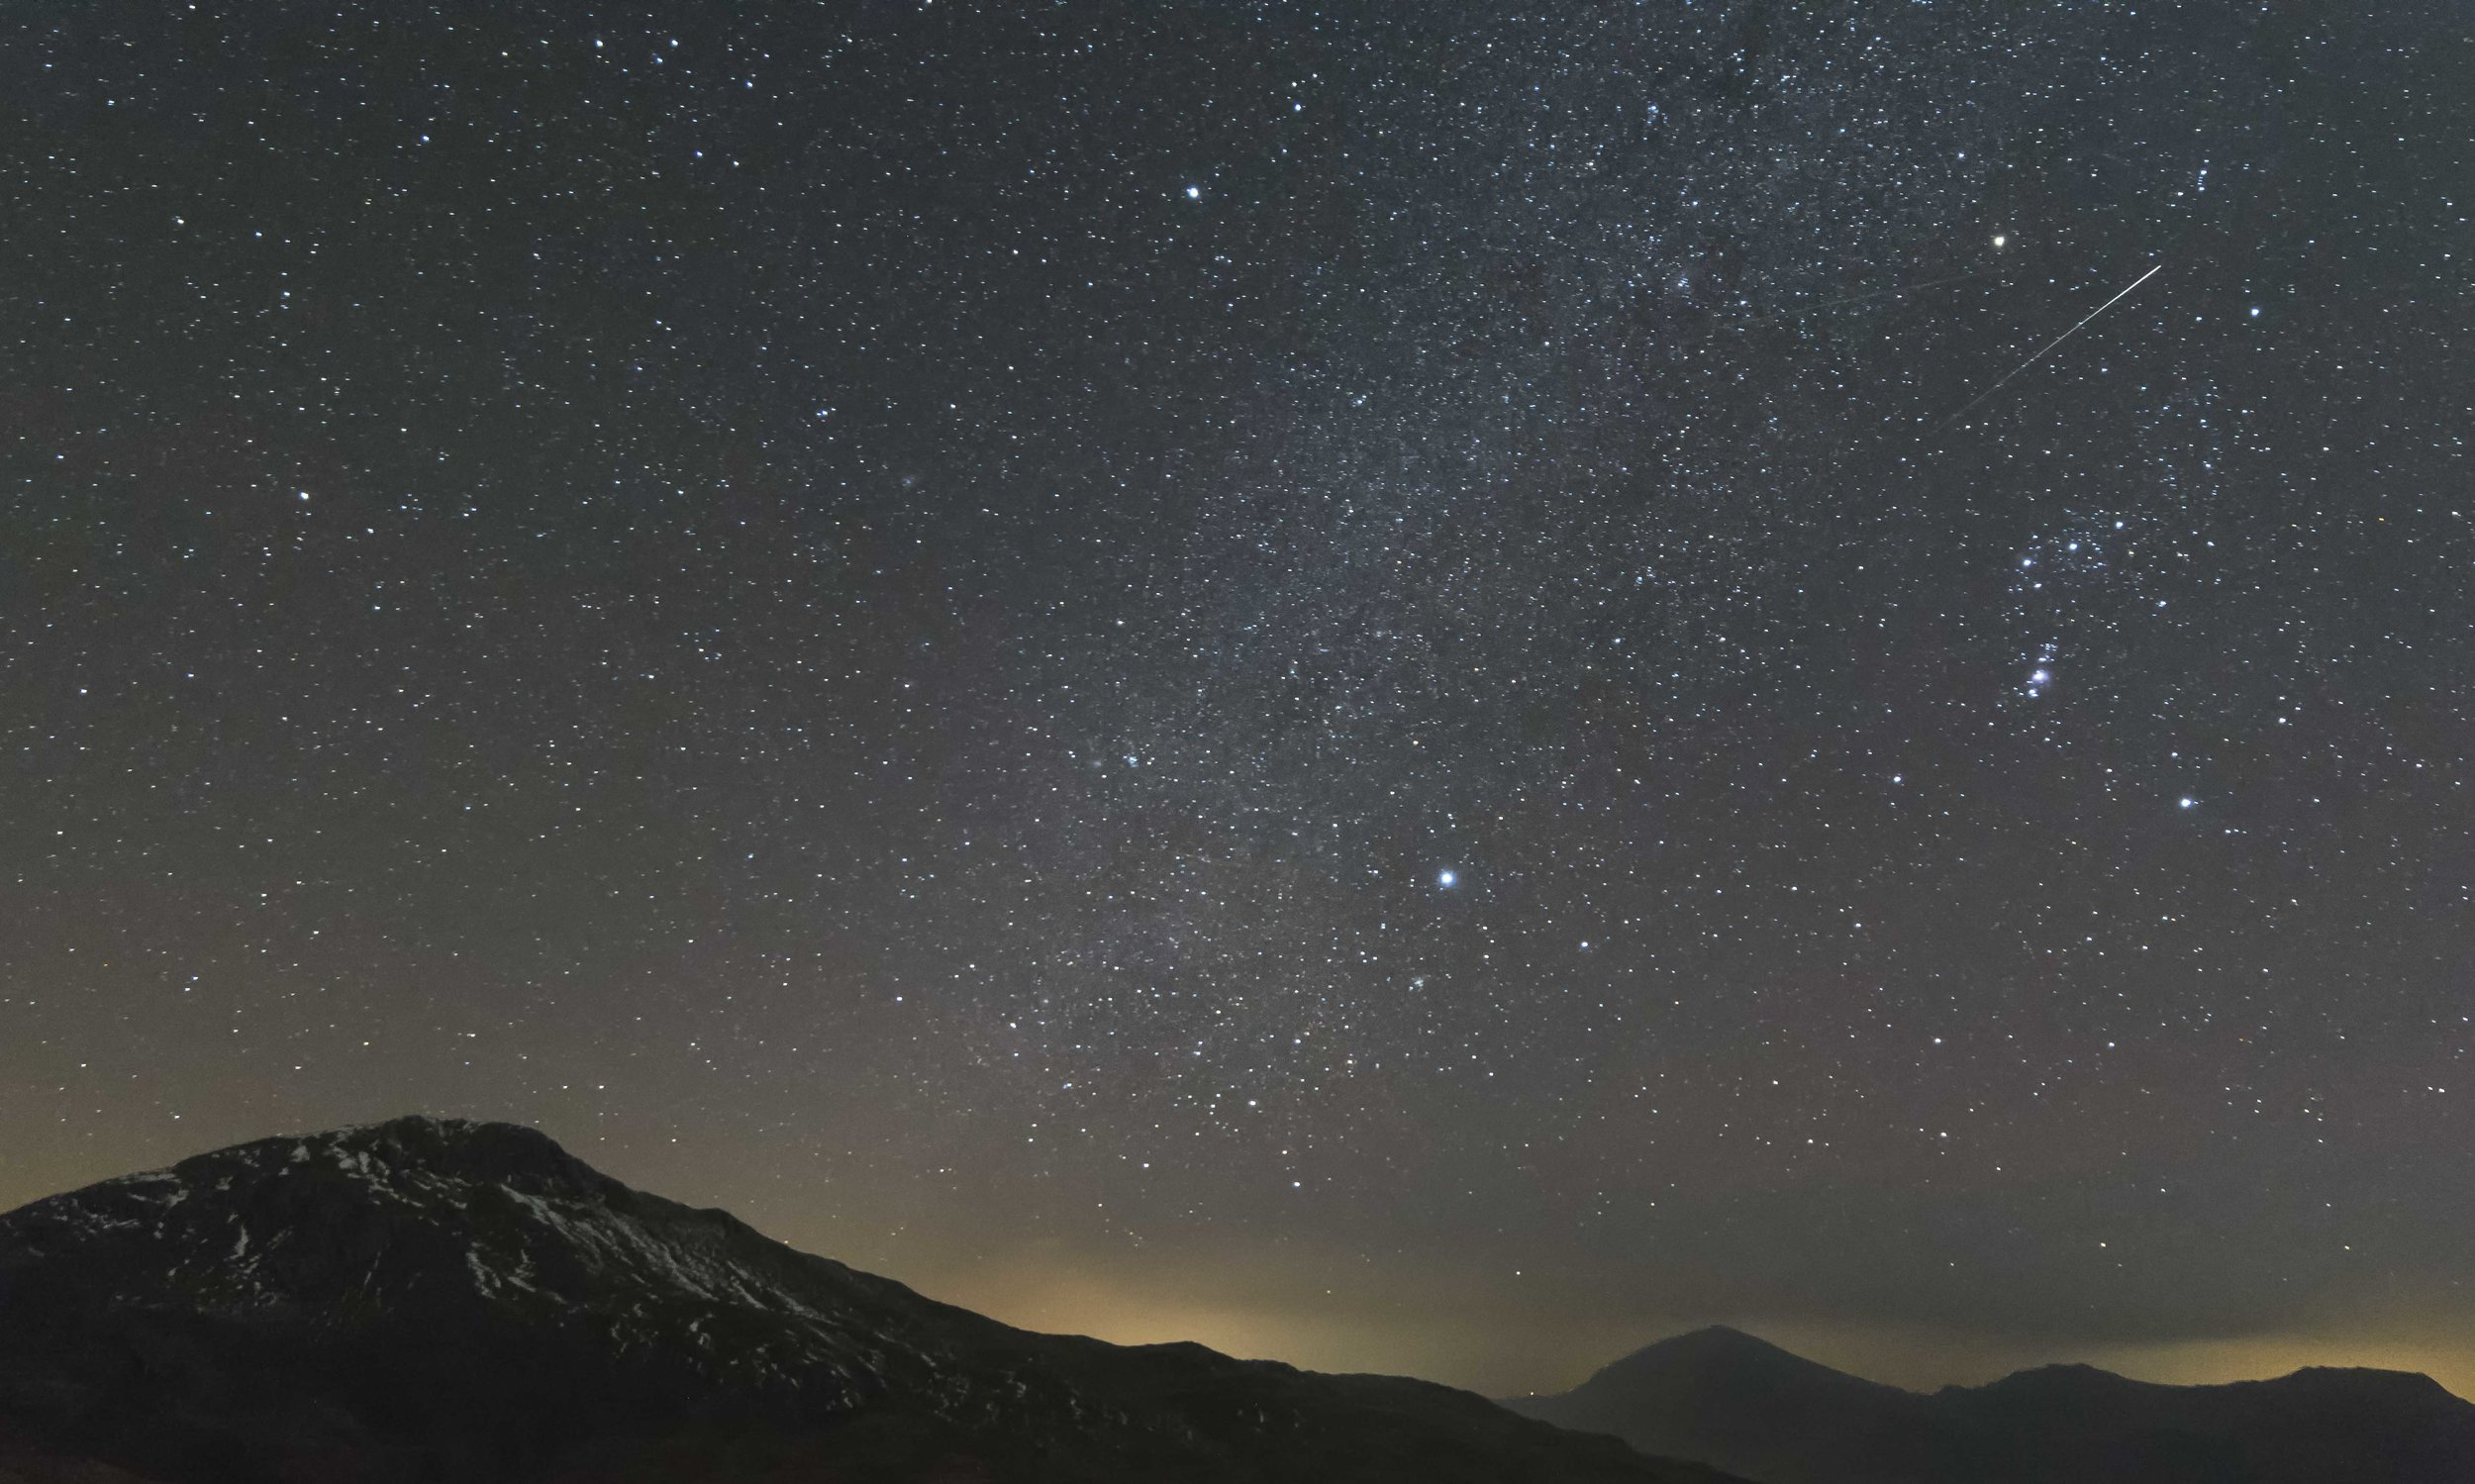 Lucky to capture this meteor over Yr Aran